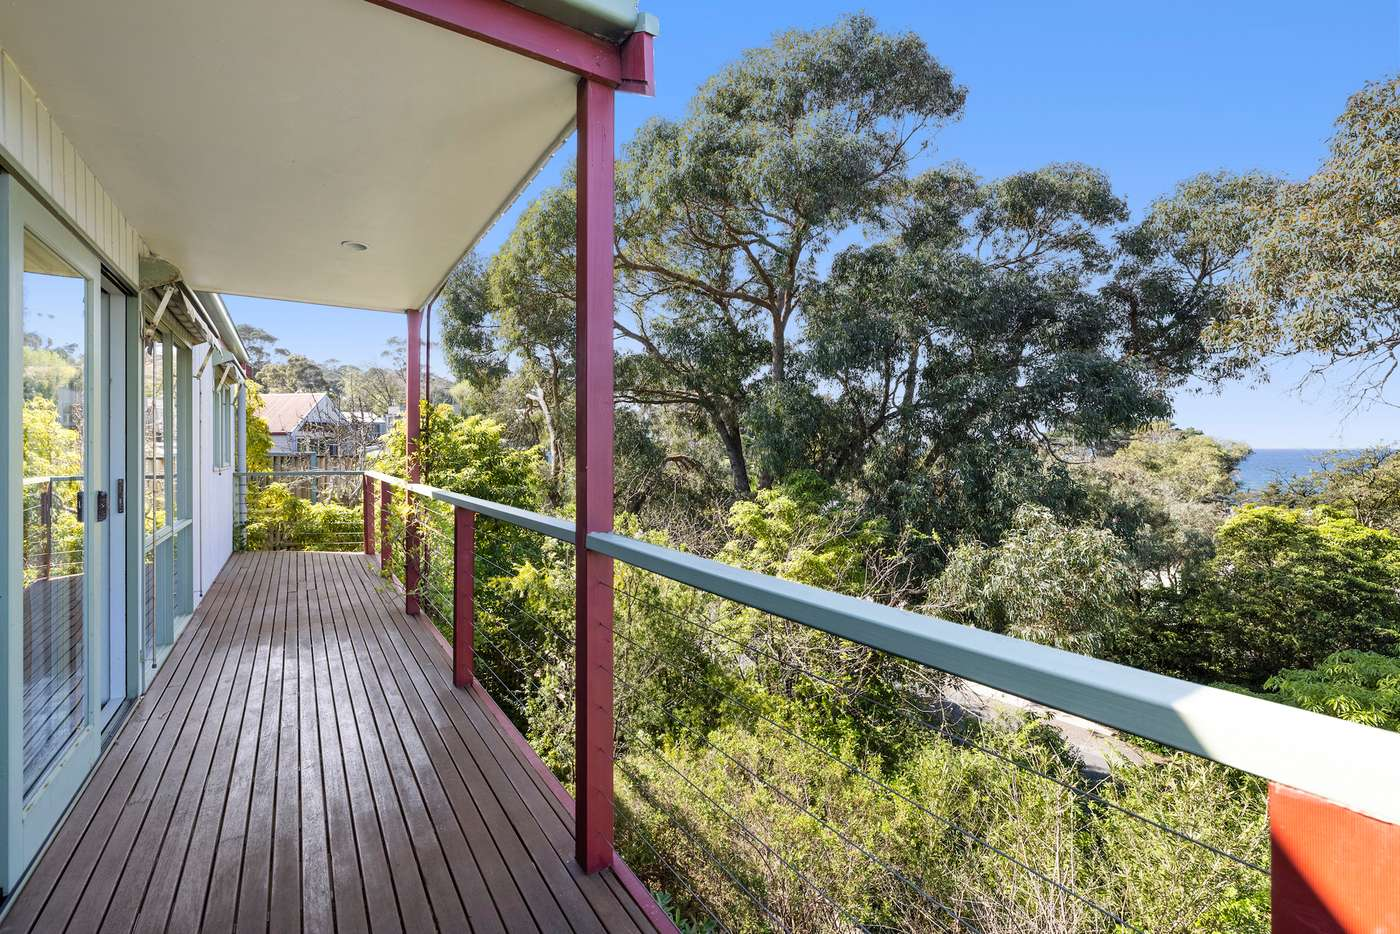 Fifth view of Homely house listing, 1/2A Minapre Street, Lorne VIC 3232